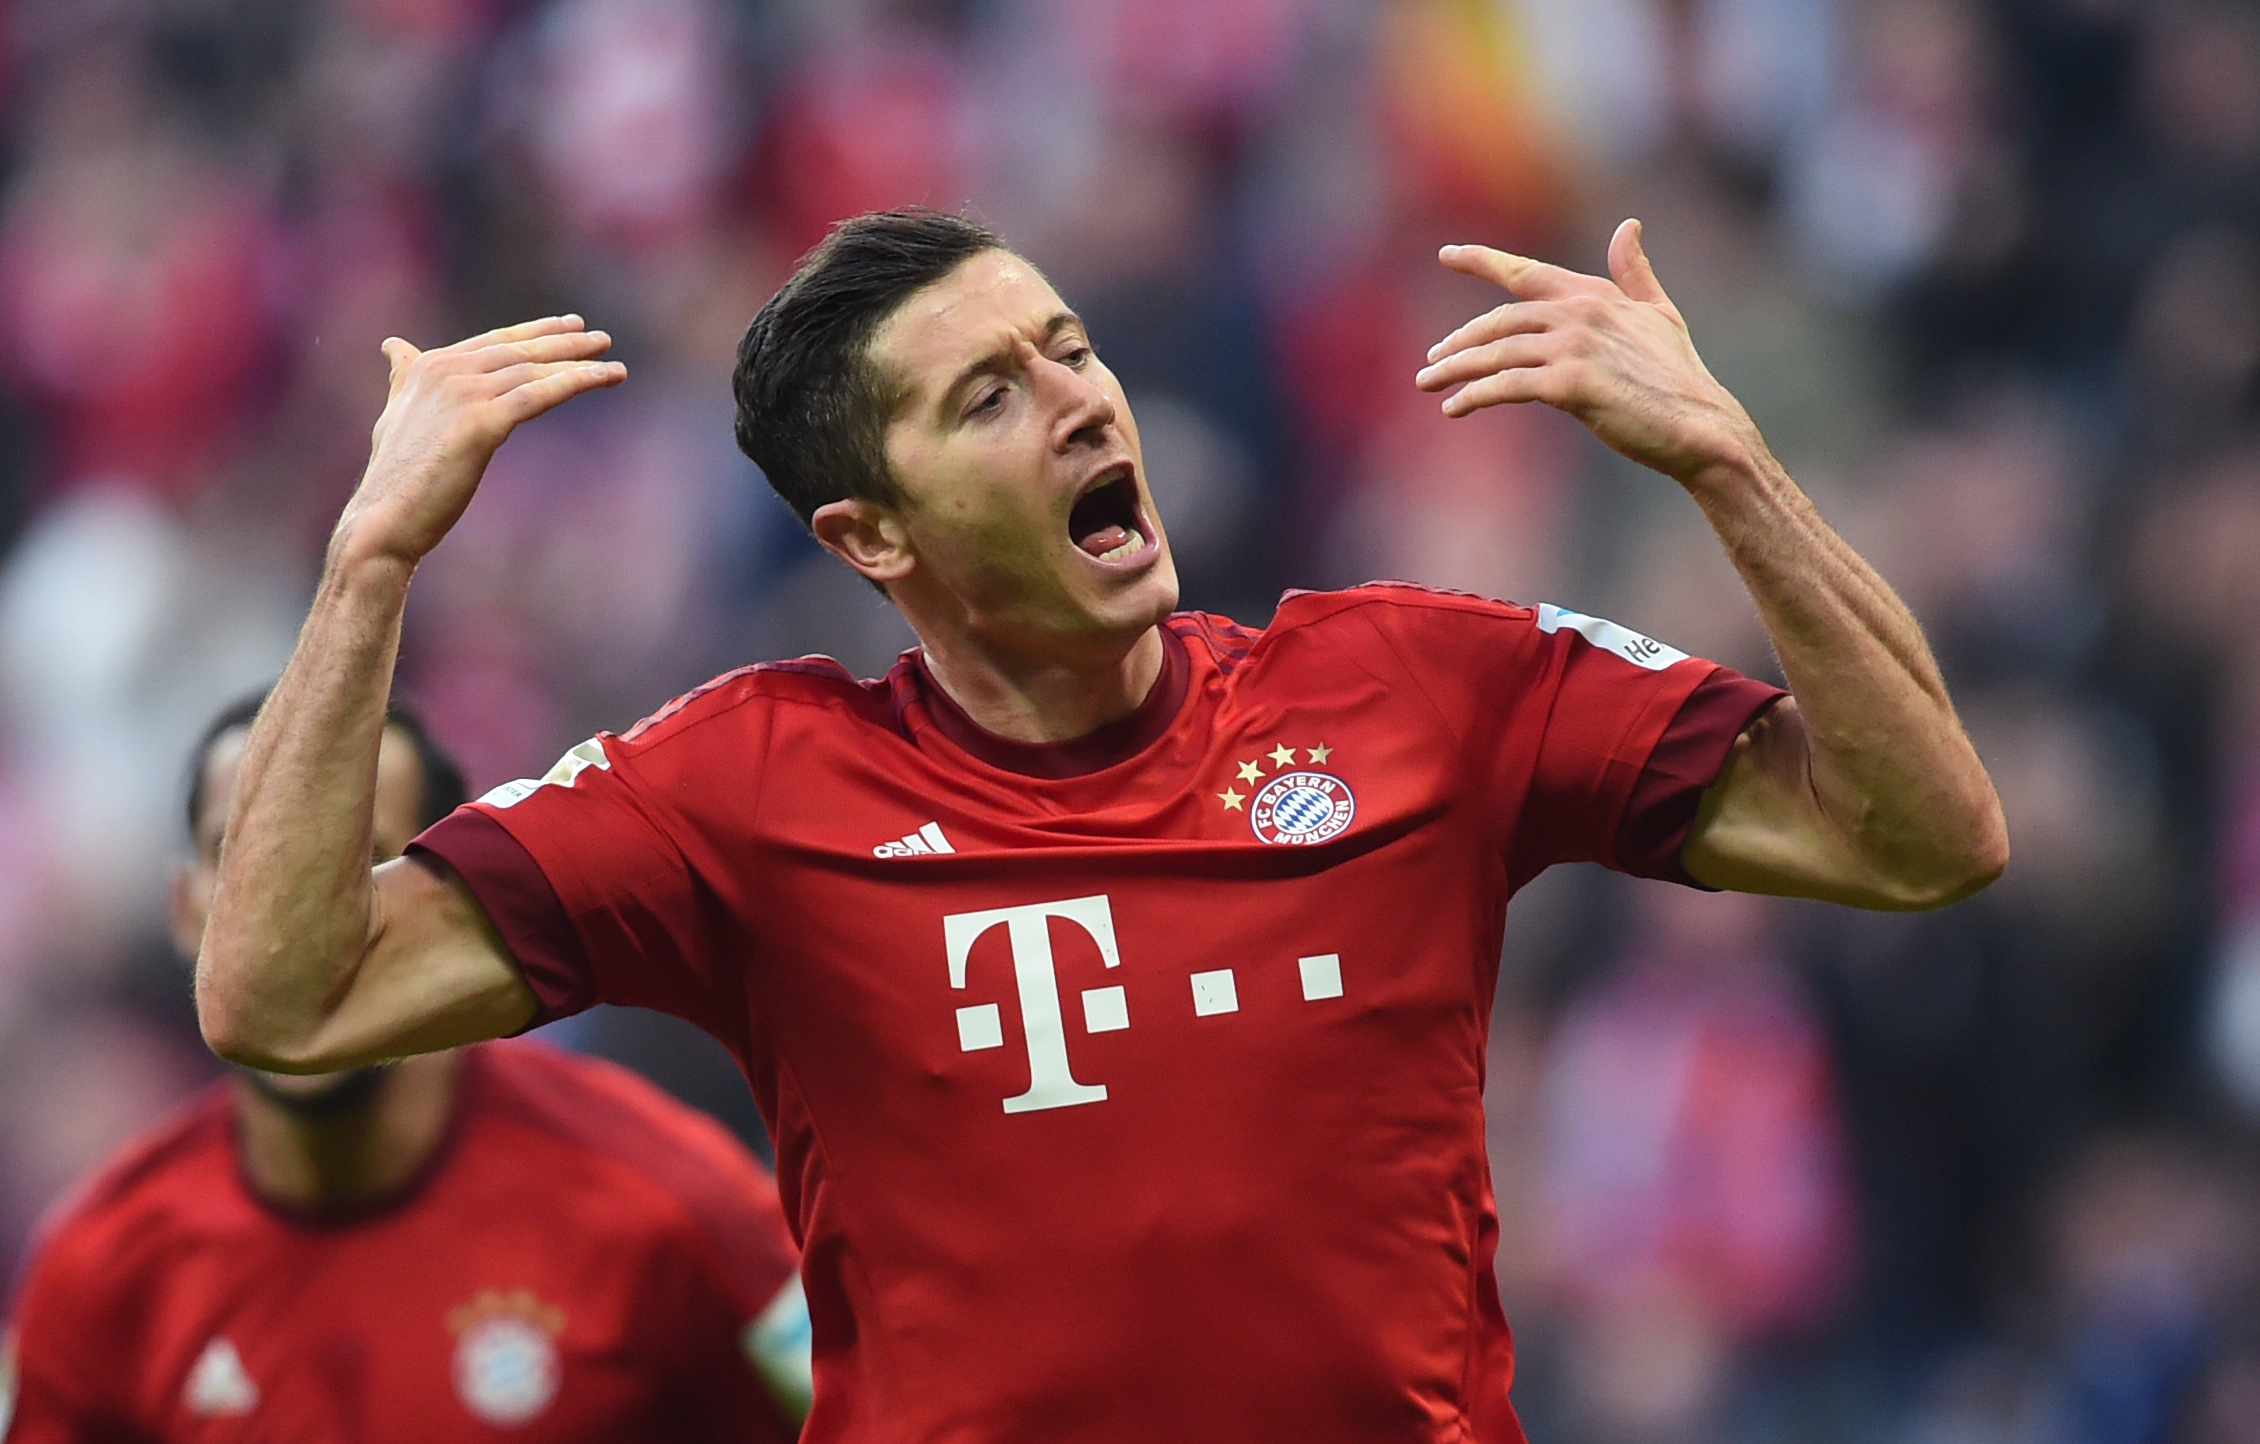 Video: Bayern Munich vs Schalke 04